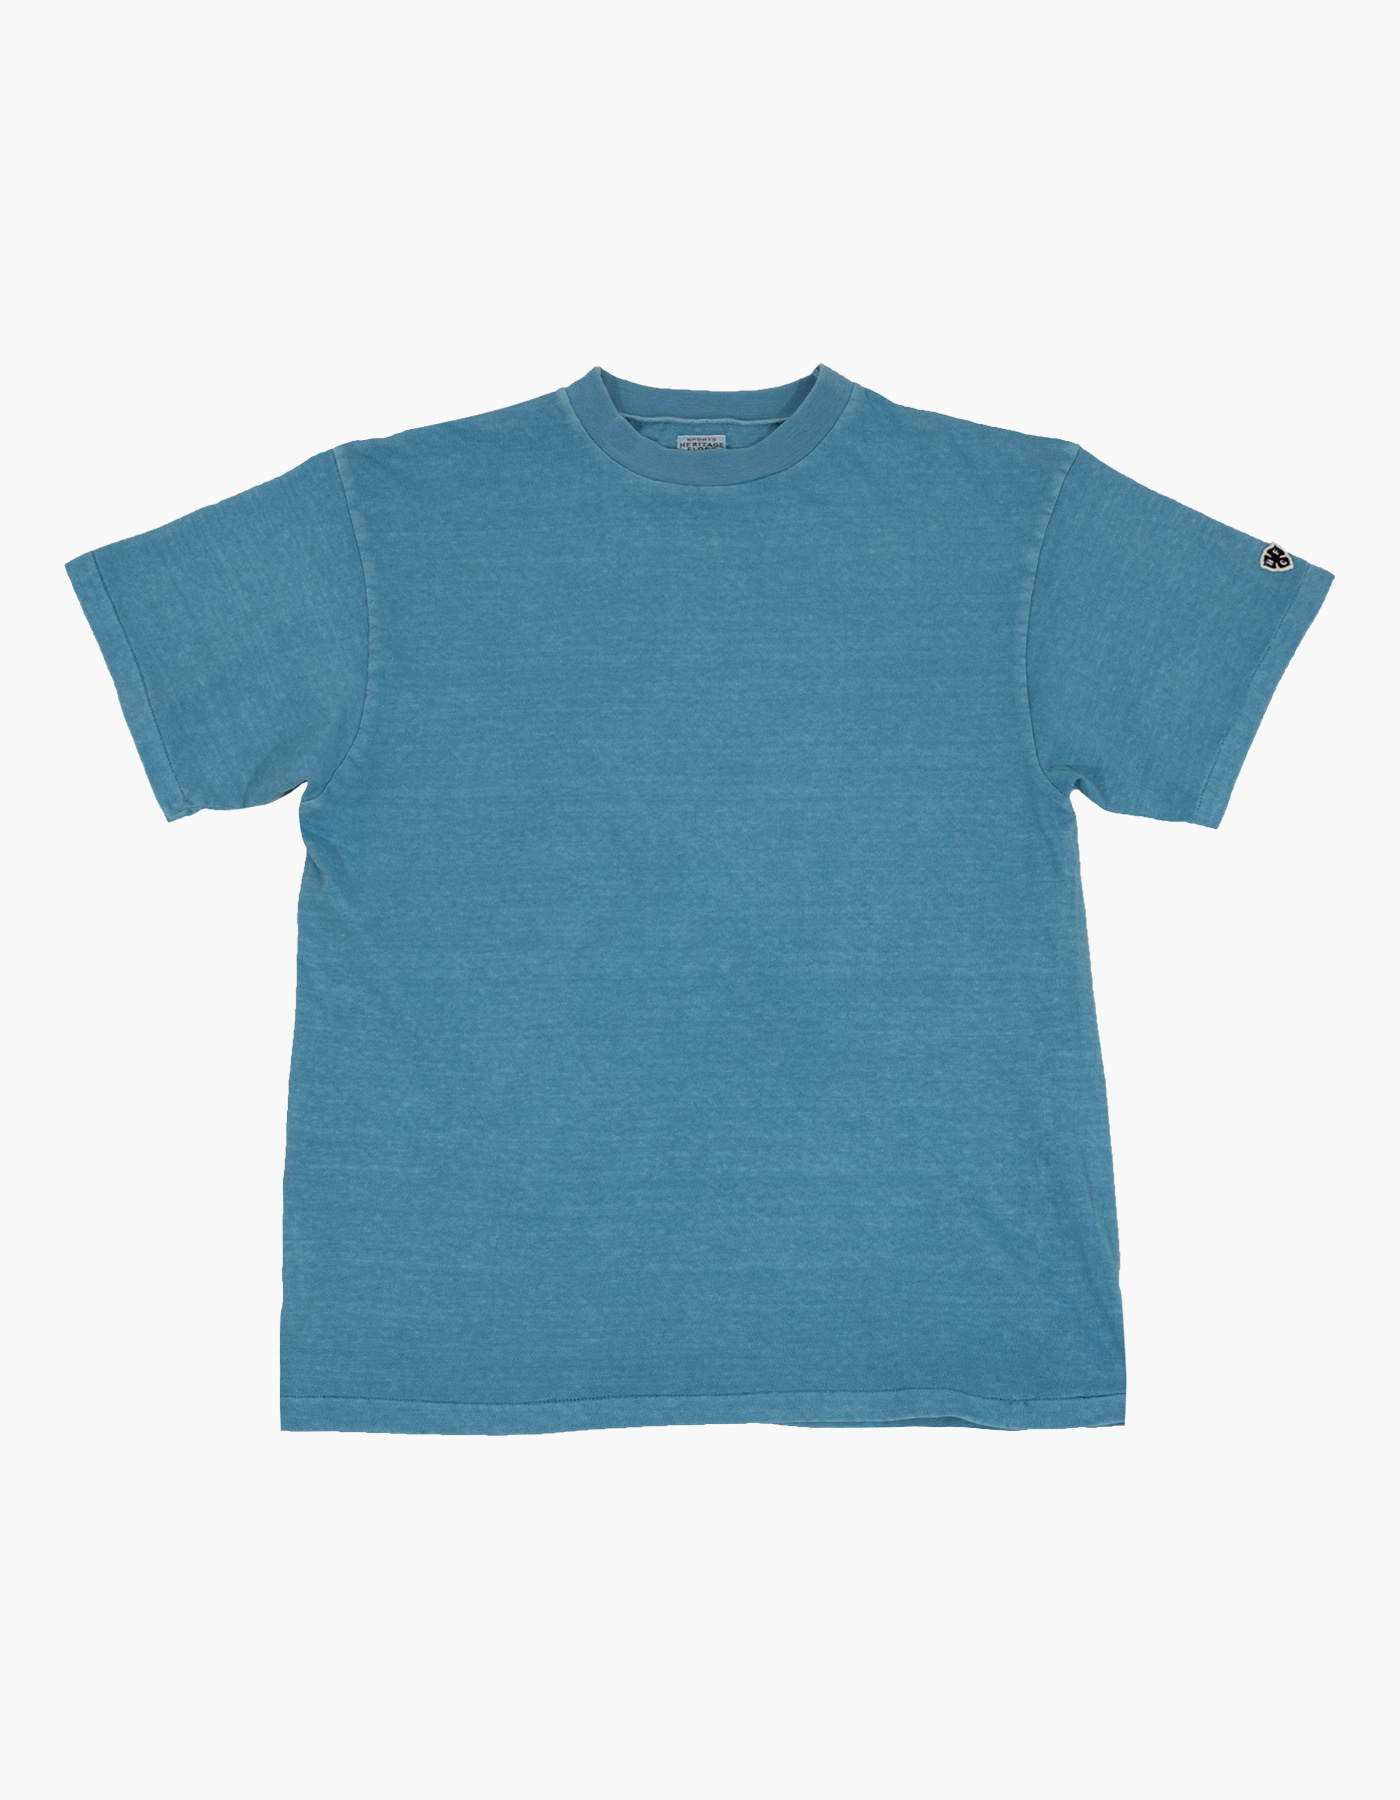 PIGMENT COMPACT YARN T-SHIRTS / SKY BLUE